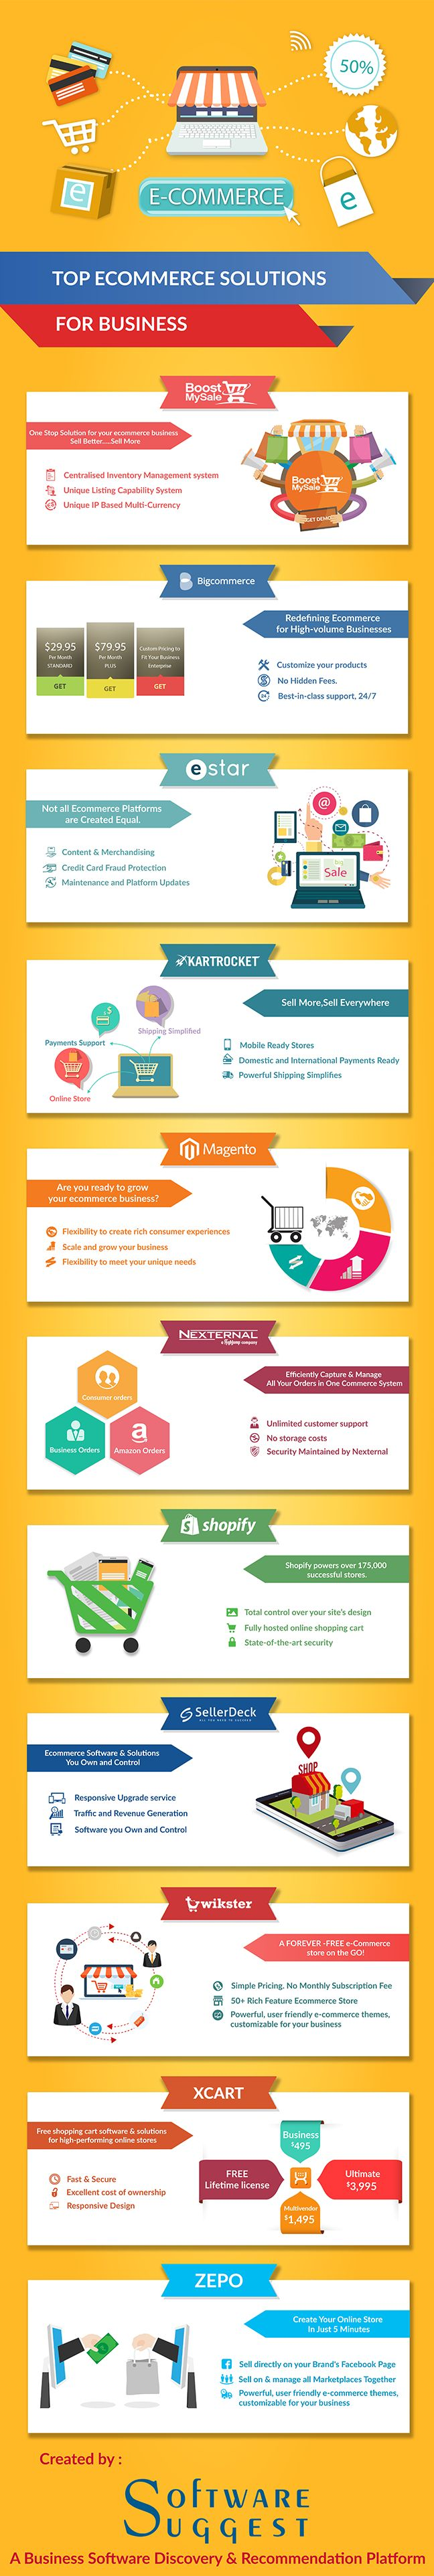 The top eCommerce Solutions for your business are being ilustrated with the help of the infographic. B2B, B2C, C2C and C2B are the transactions focused upon.